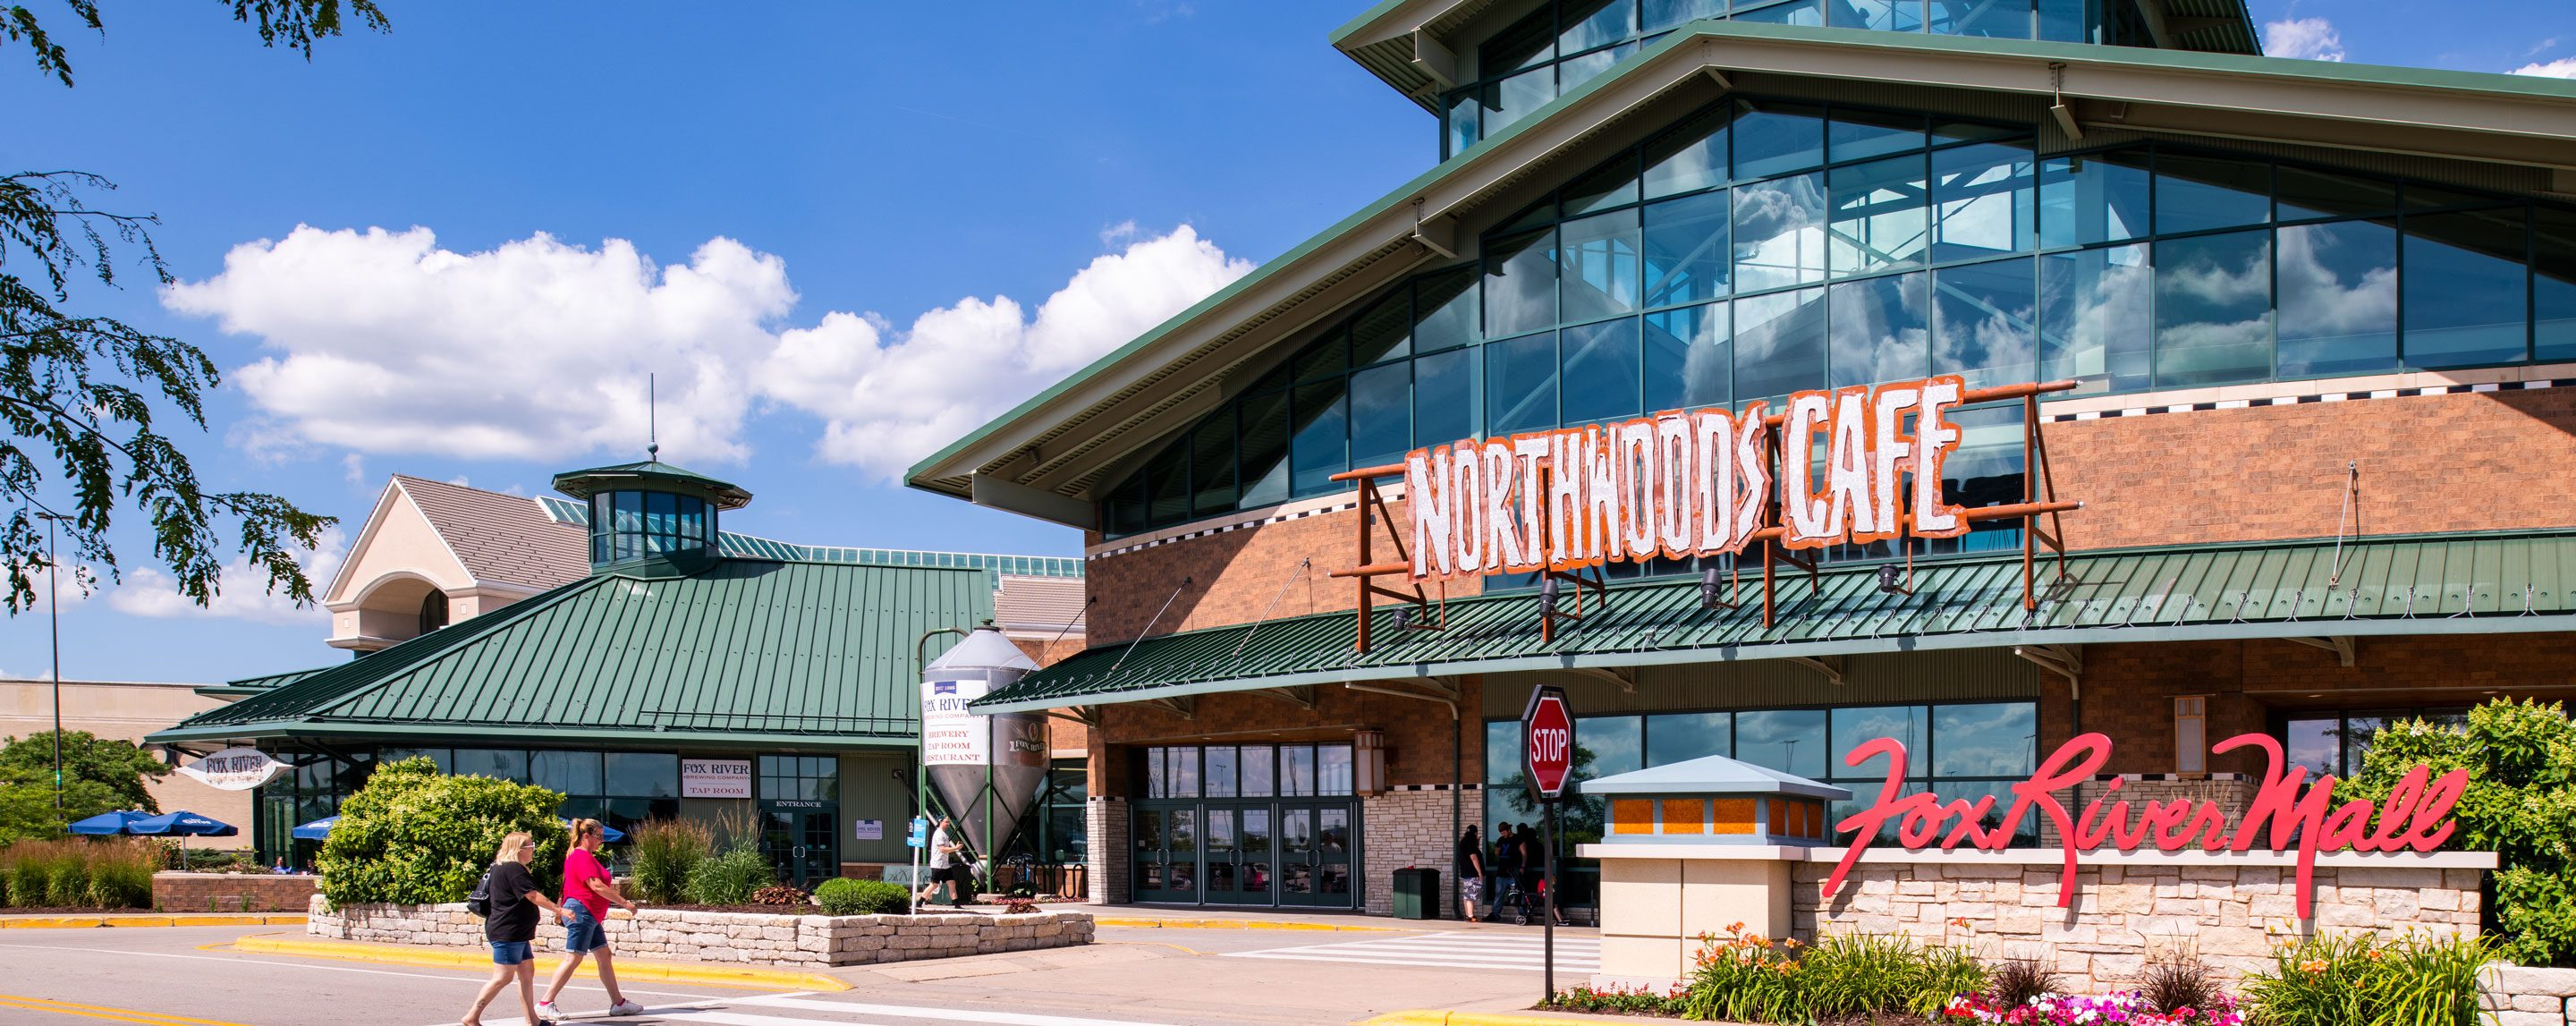 An outside shot of Northwoods Cafe on a sunny day. A couple is walking towards the entrance.